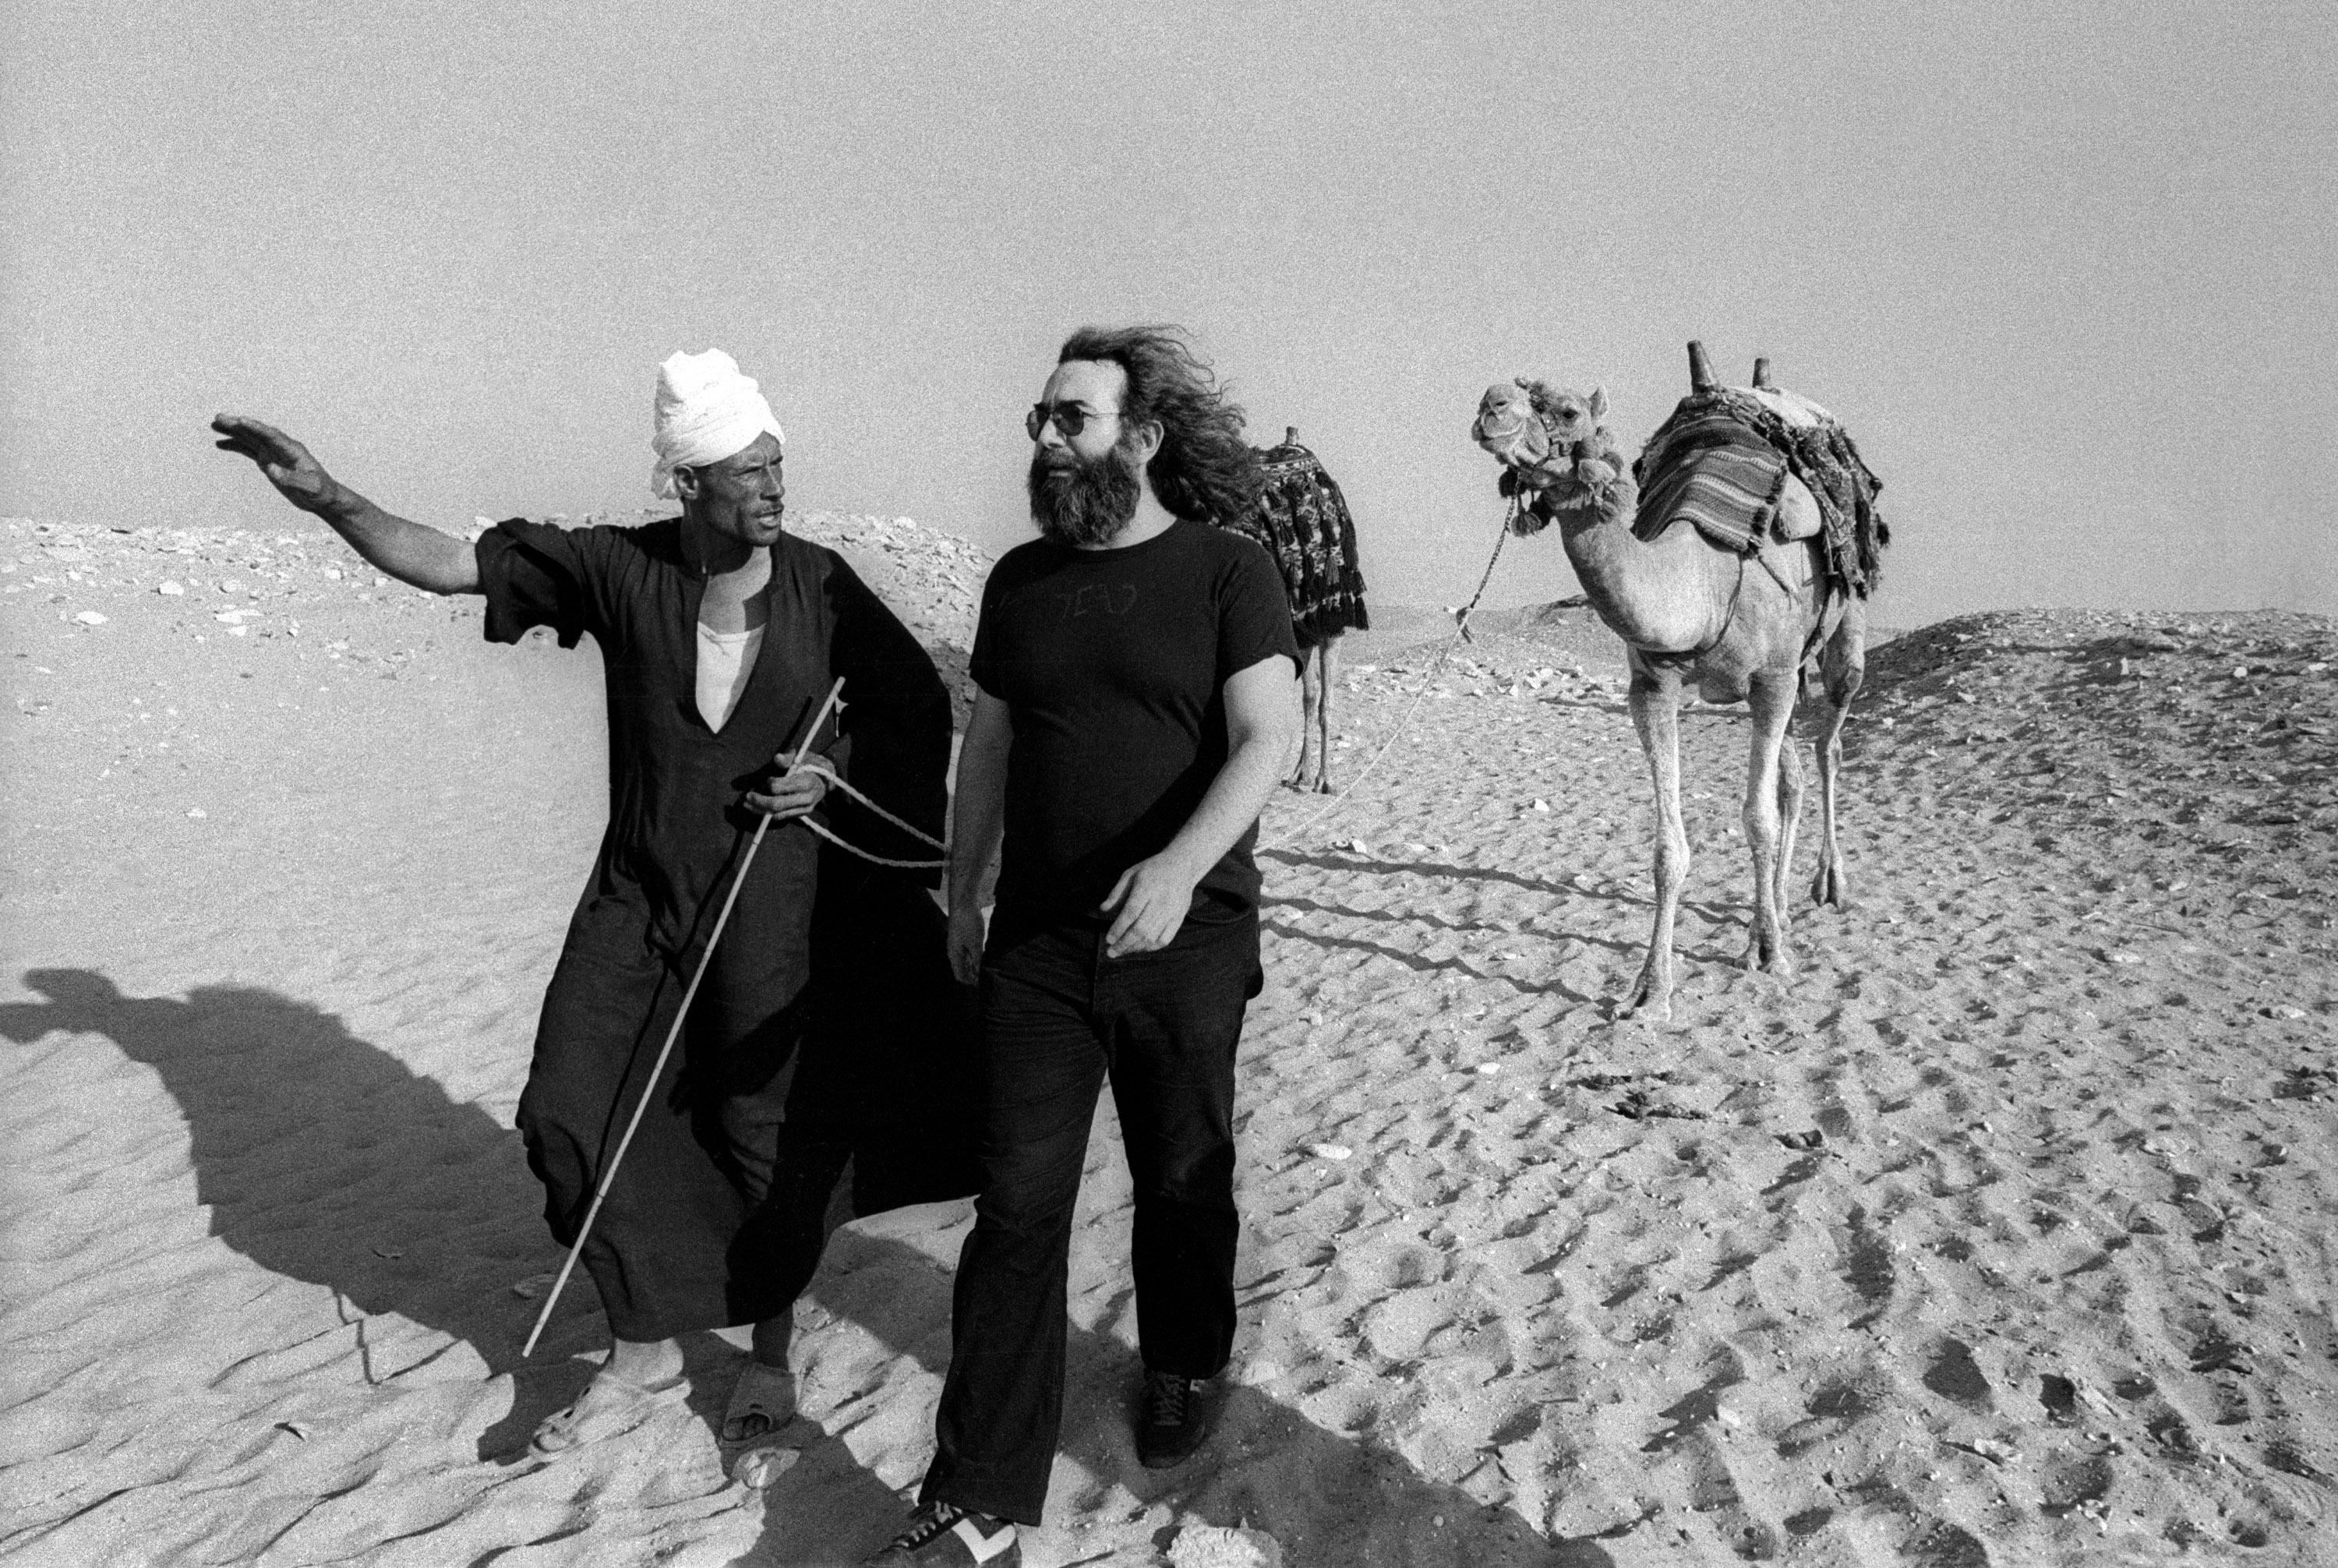 Jerry Garcia with guide at the Pyramids